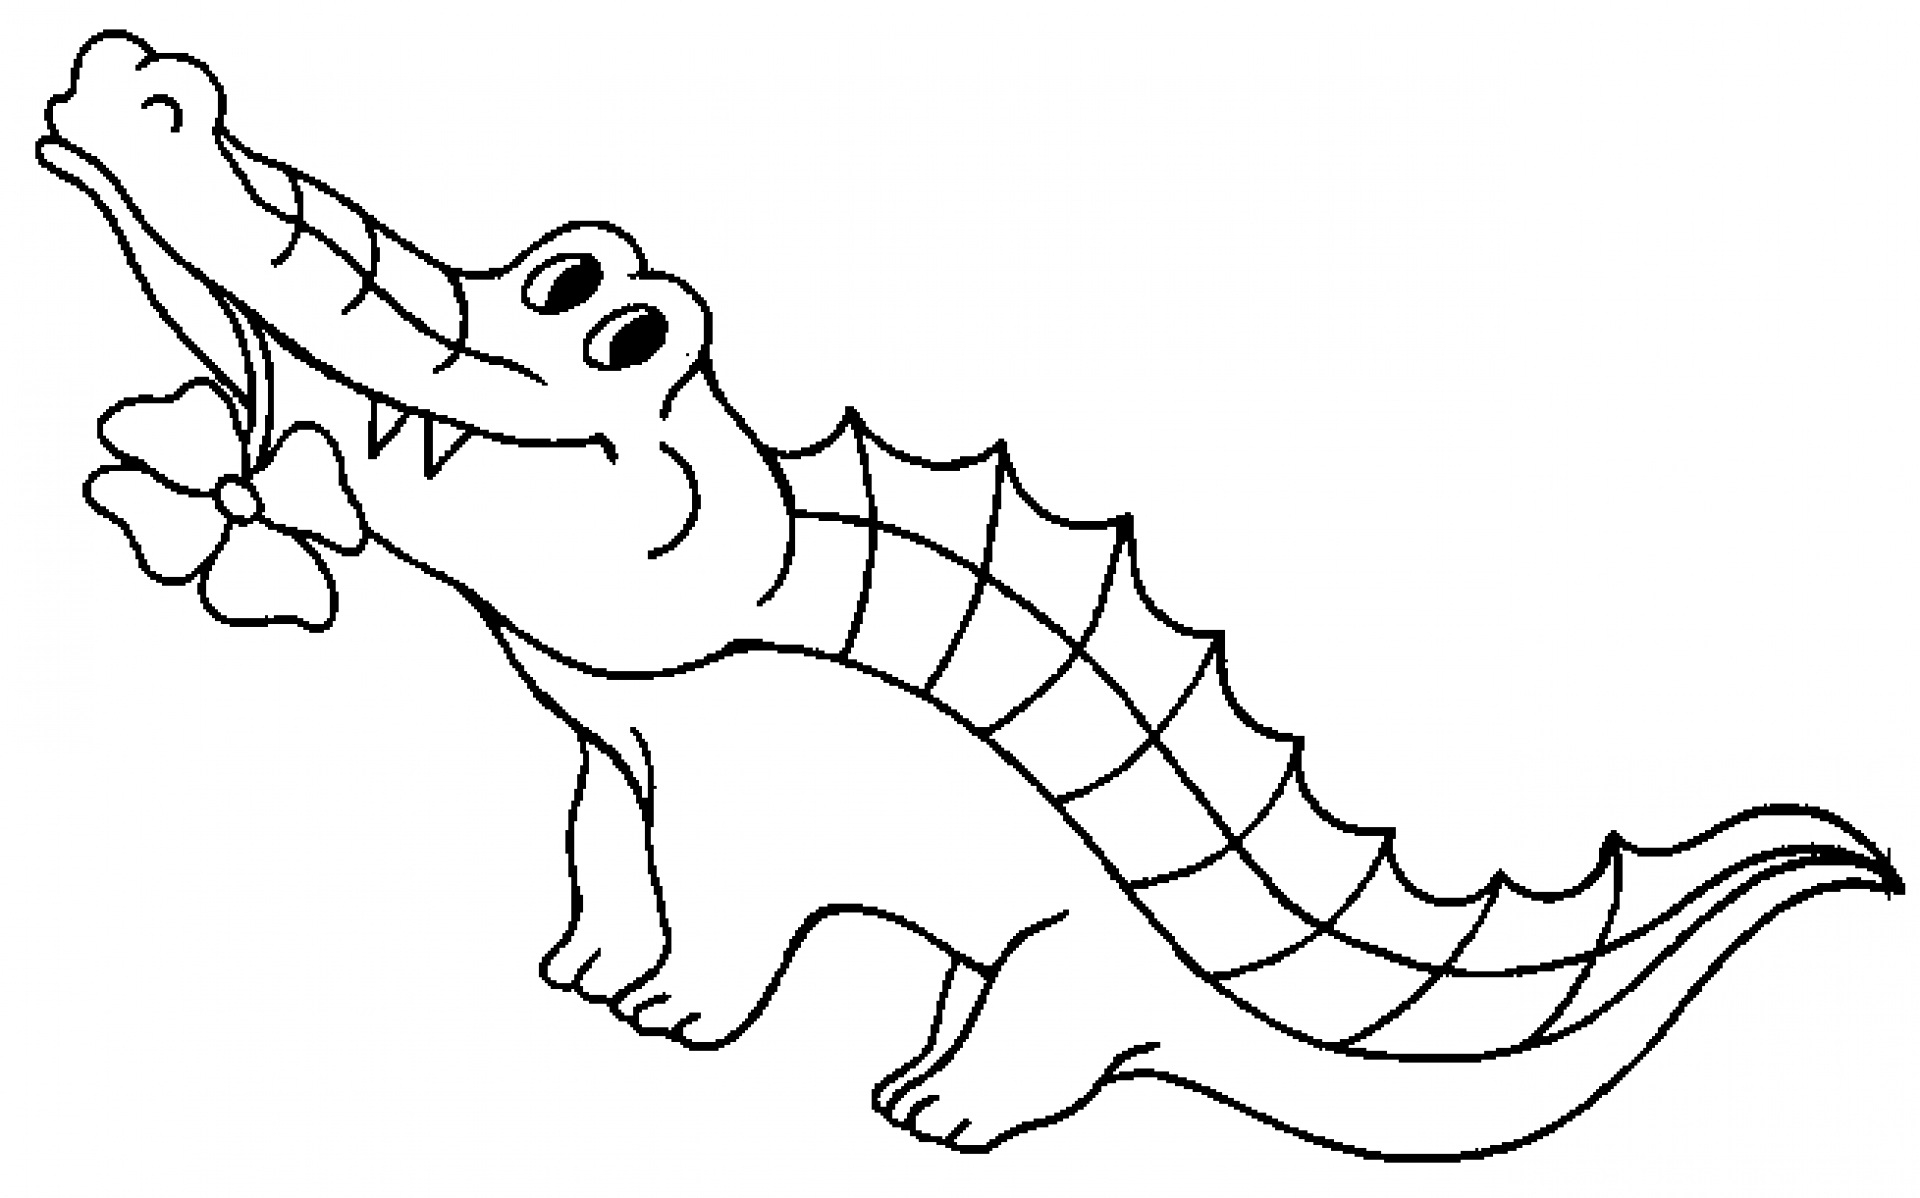 Cute Alligator Clipart Black And White.